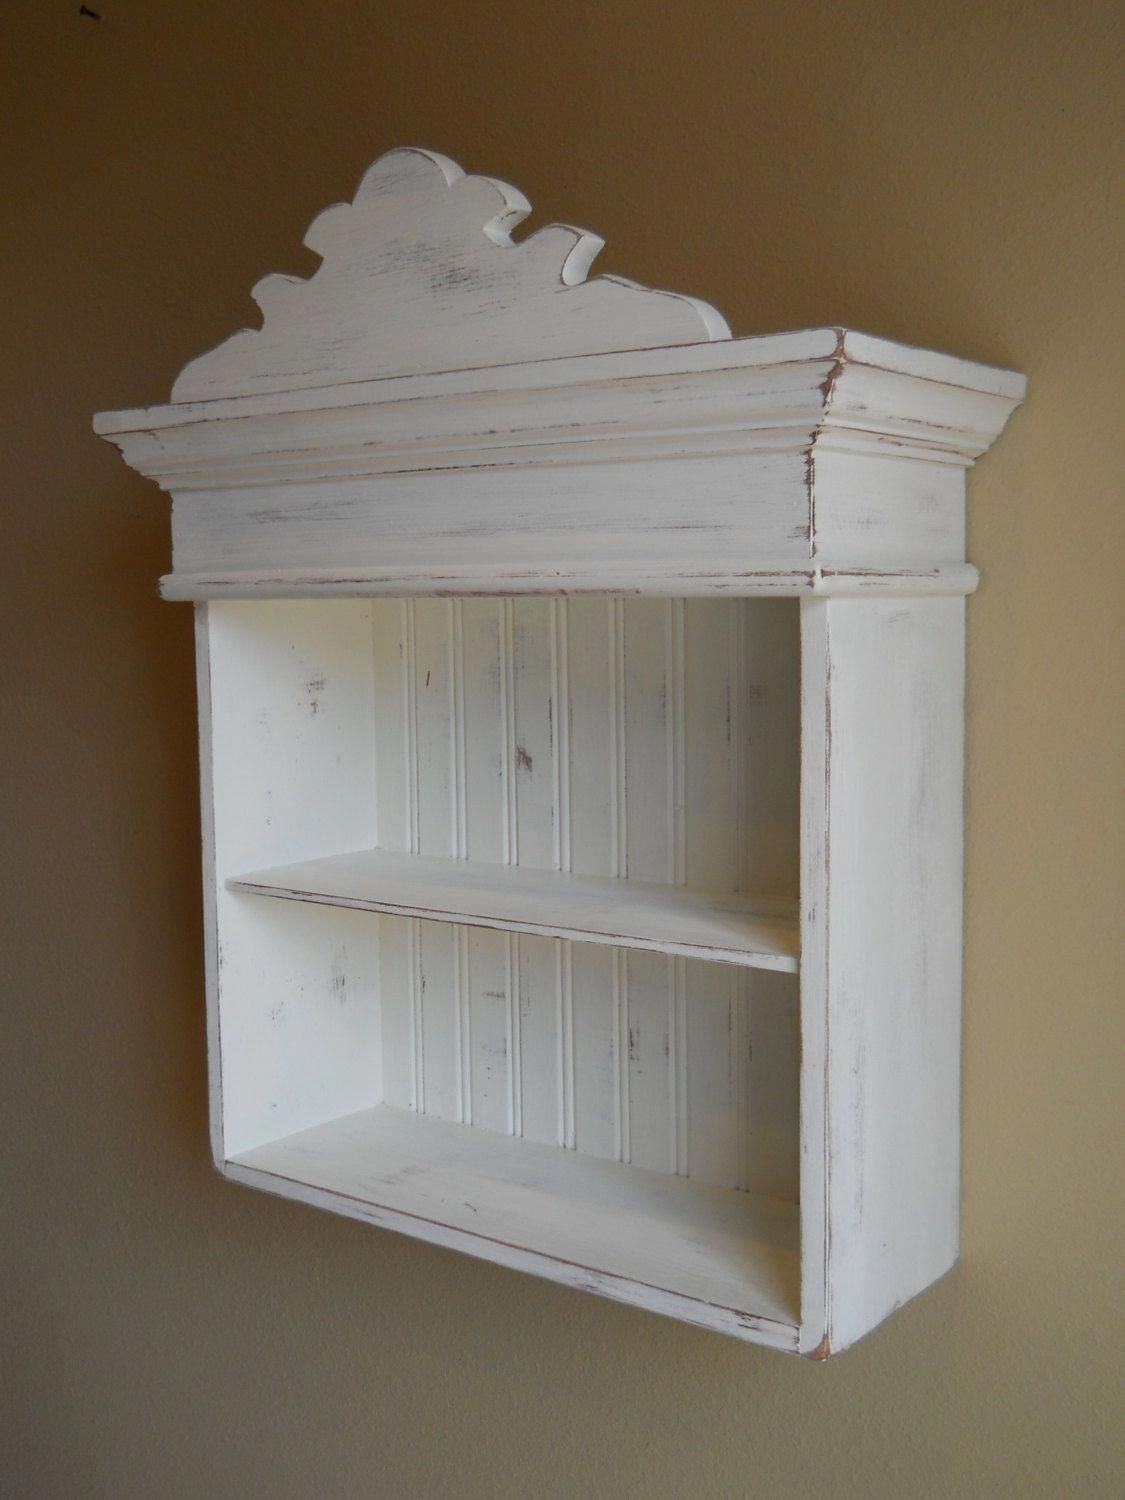 Distressed White Cabinet Bathroom Cabinet Kitchen Cabinet Hanging Wall Cabinet Shabby Chic Cab Shabby Chic Cabinet Shabby Chic Dresser Shabby Chic Bathroom